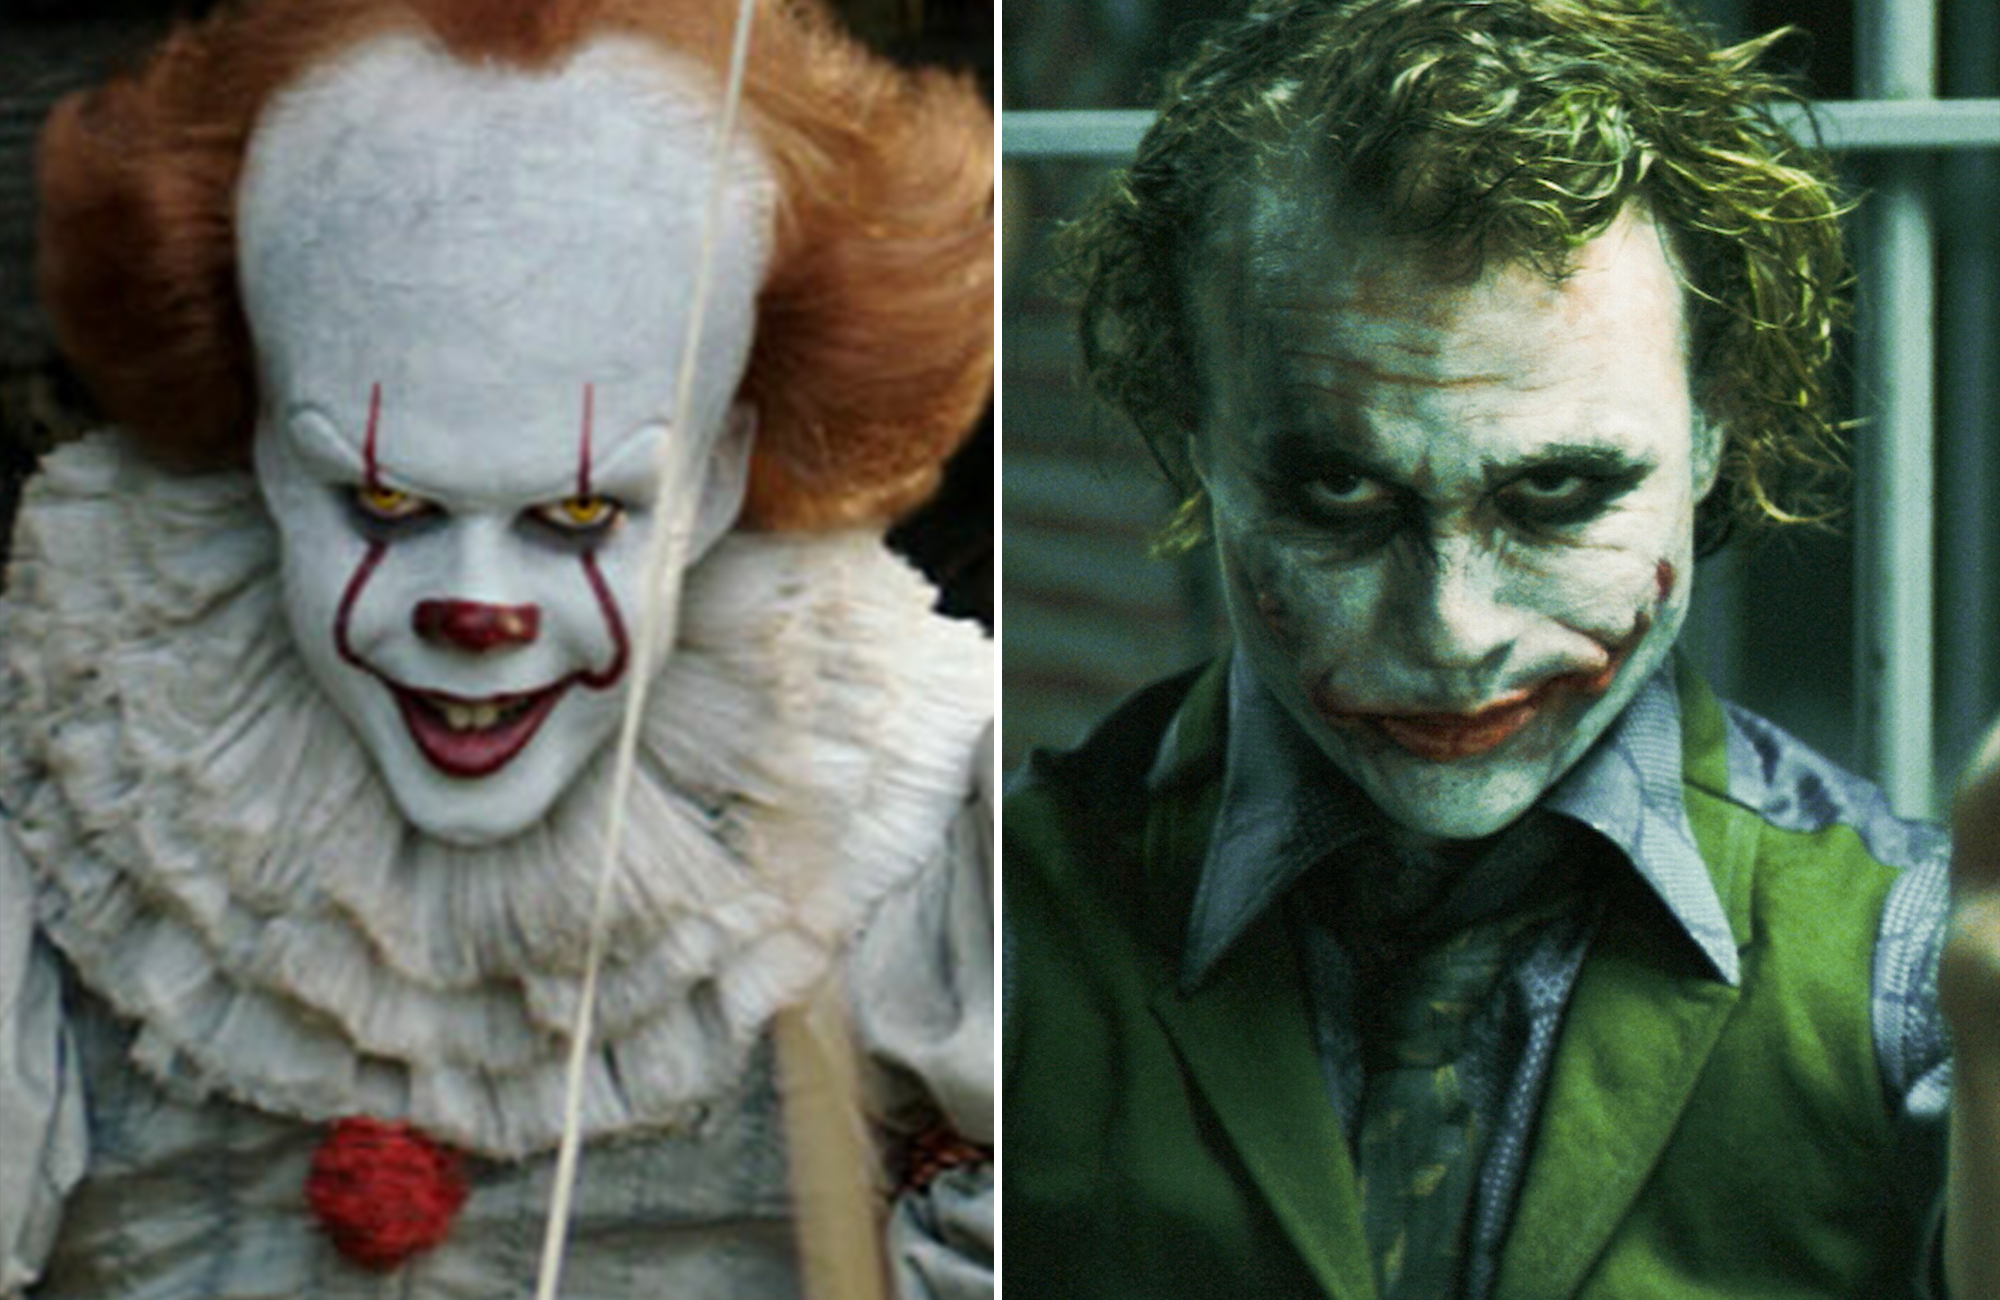 Who would win Pennywise or Joker